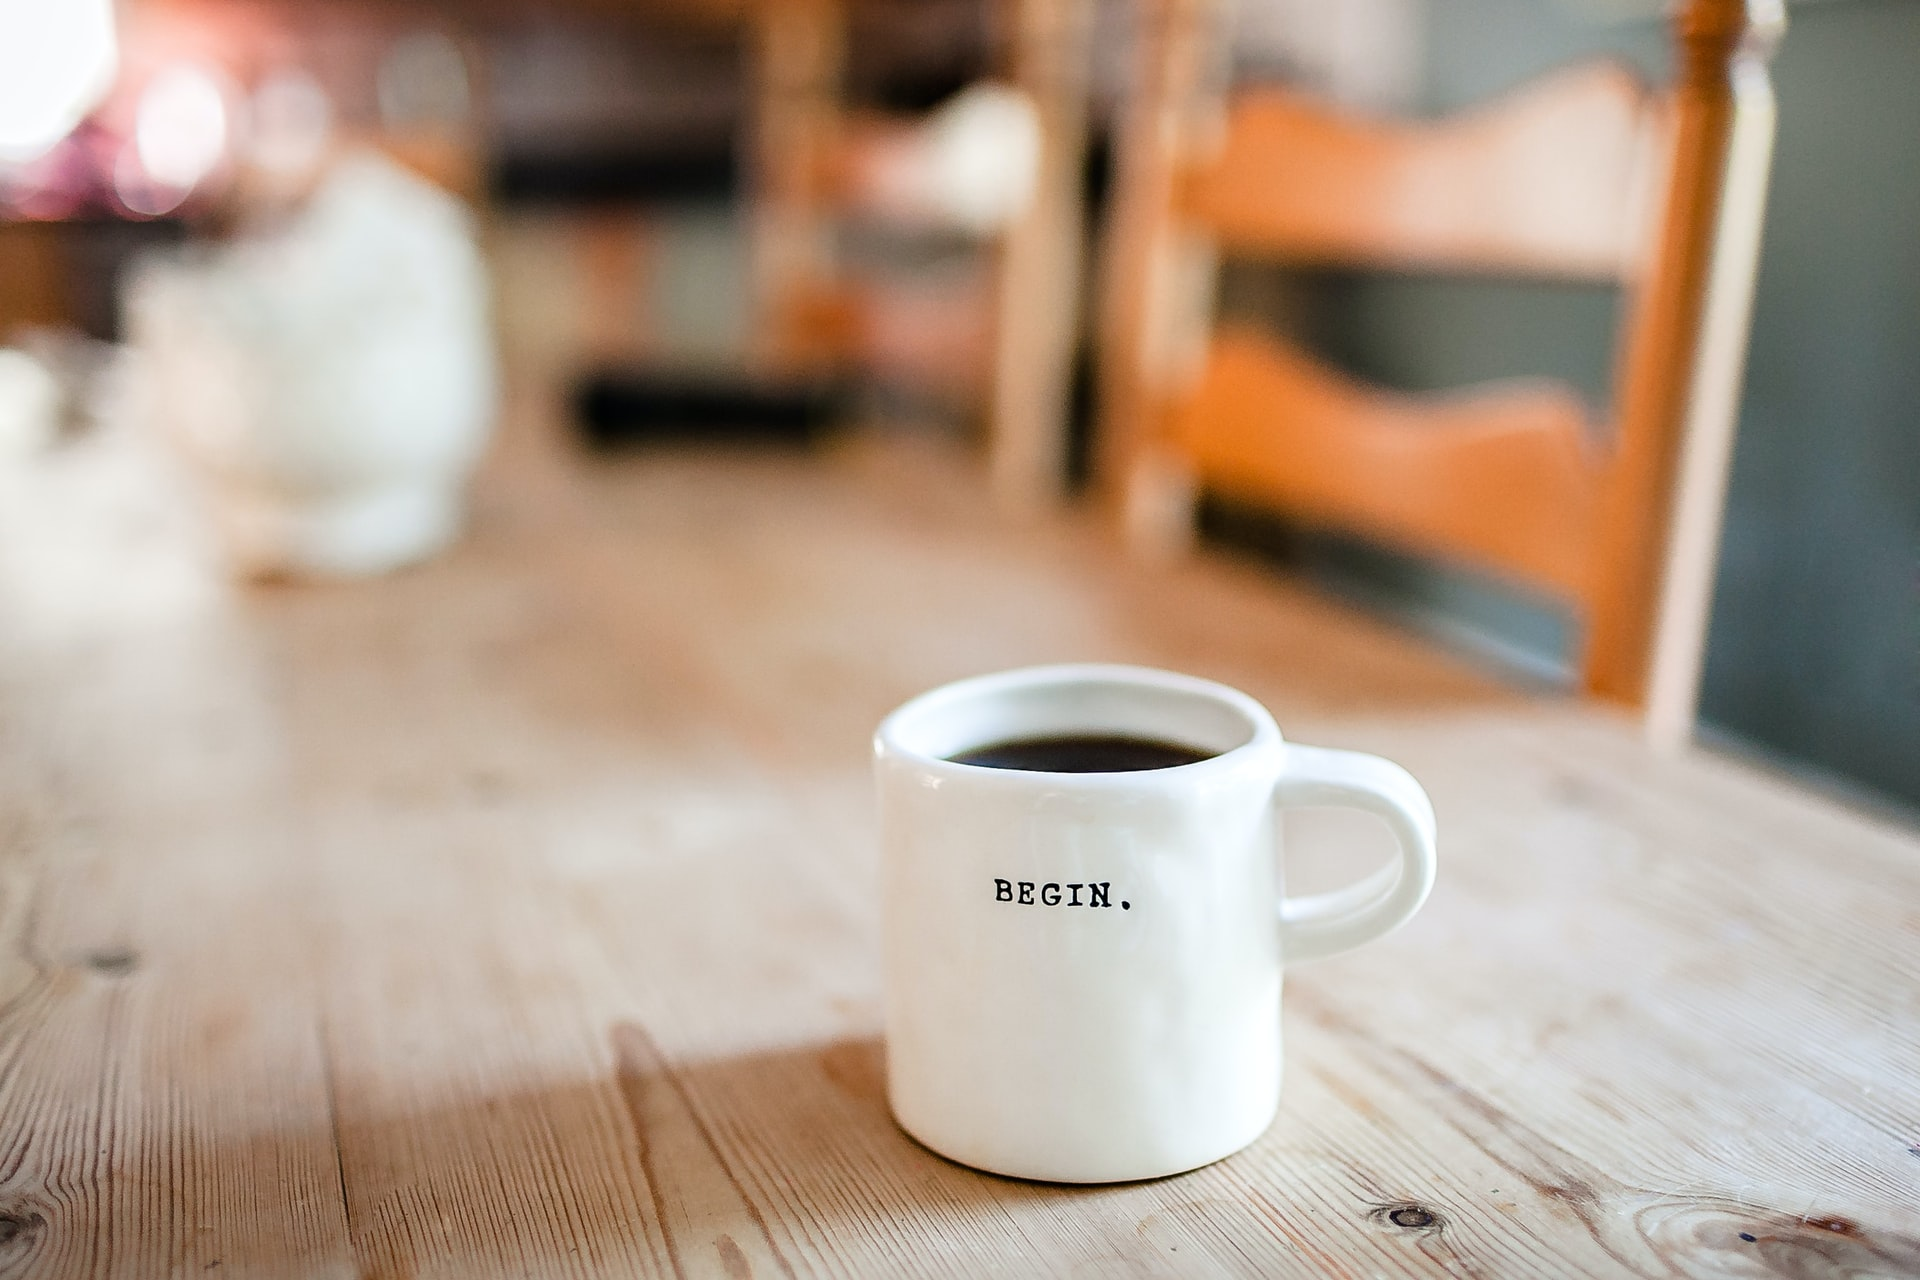 A mug sits on a table, with the word 'BEGIN' printed on it